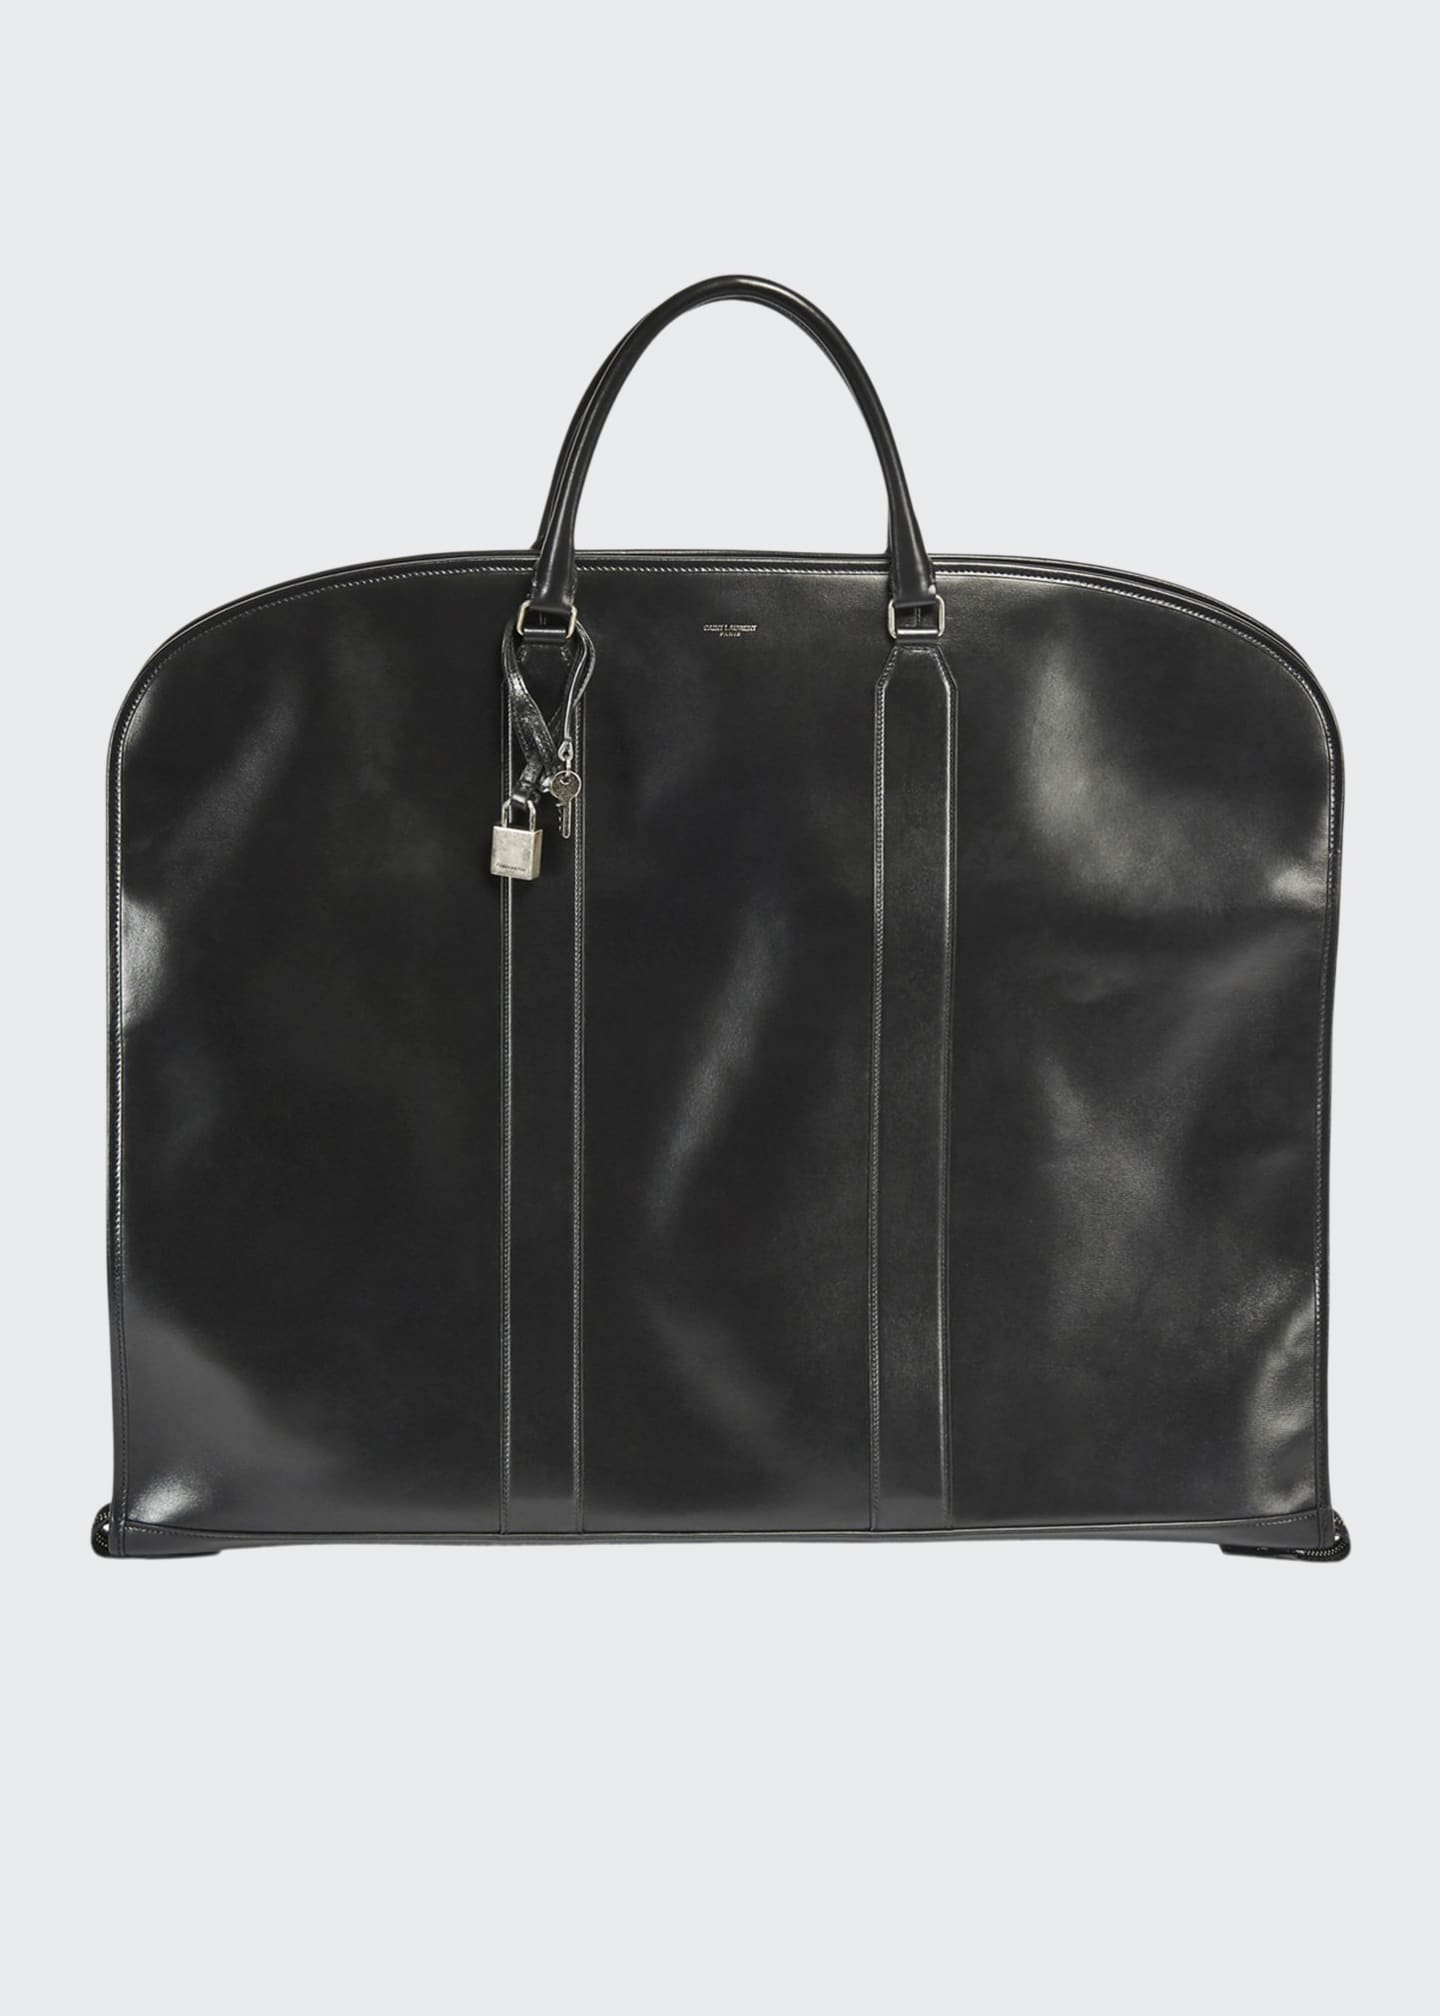 Image 1 of 3: Men's Leather Suit Garment Bag Luggage